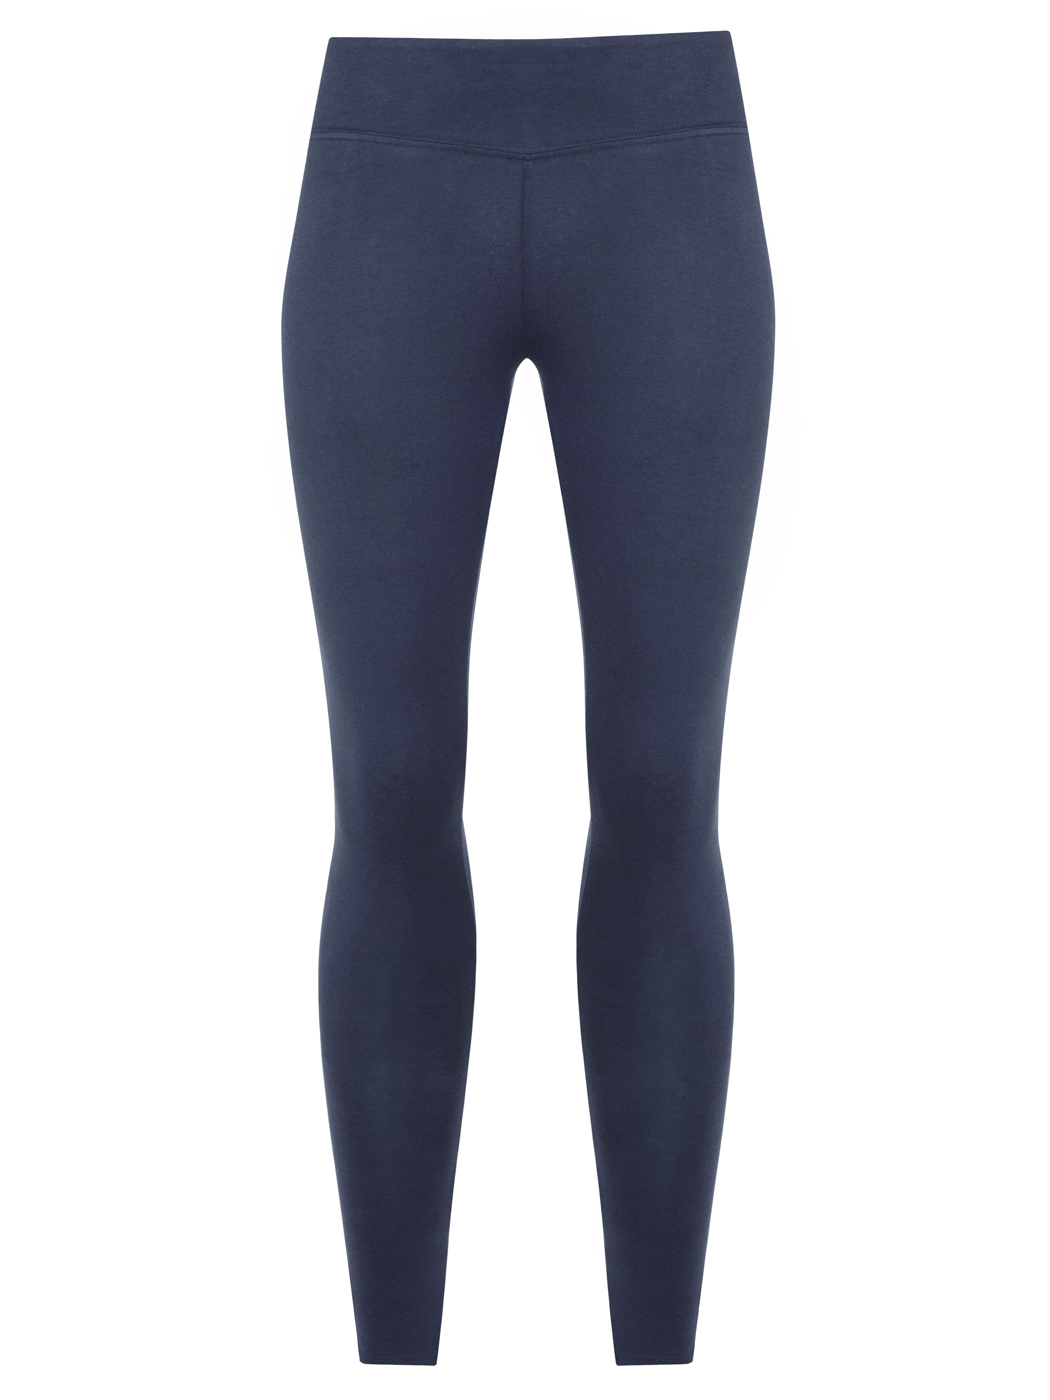 M Life Women's Lotus Yoga Legging | Bukser